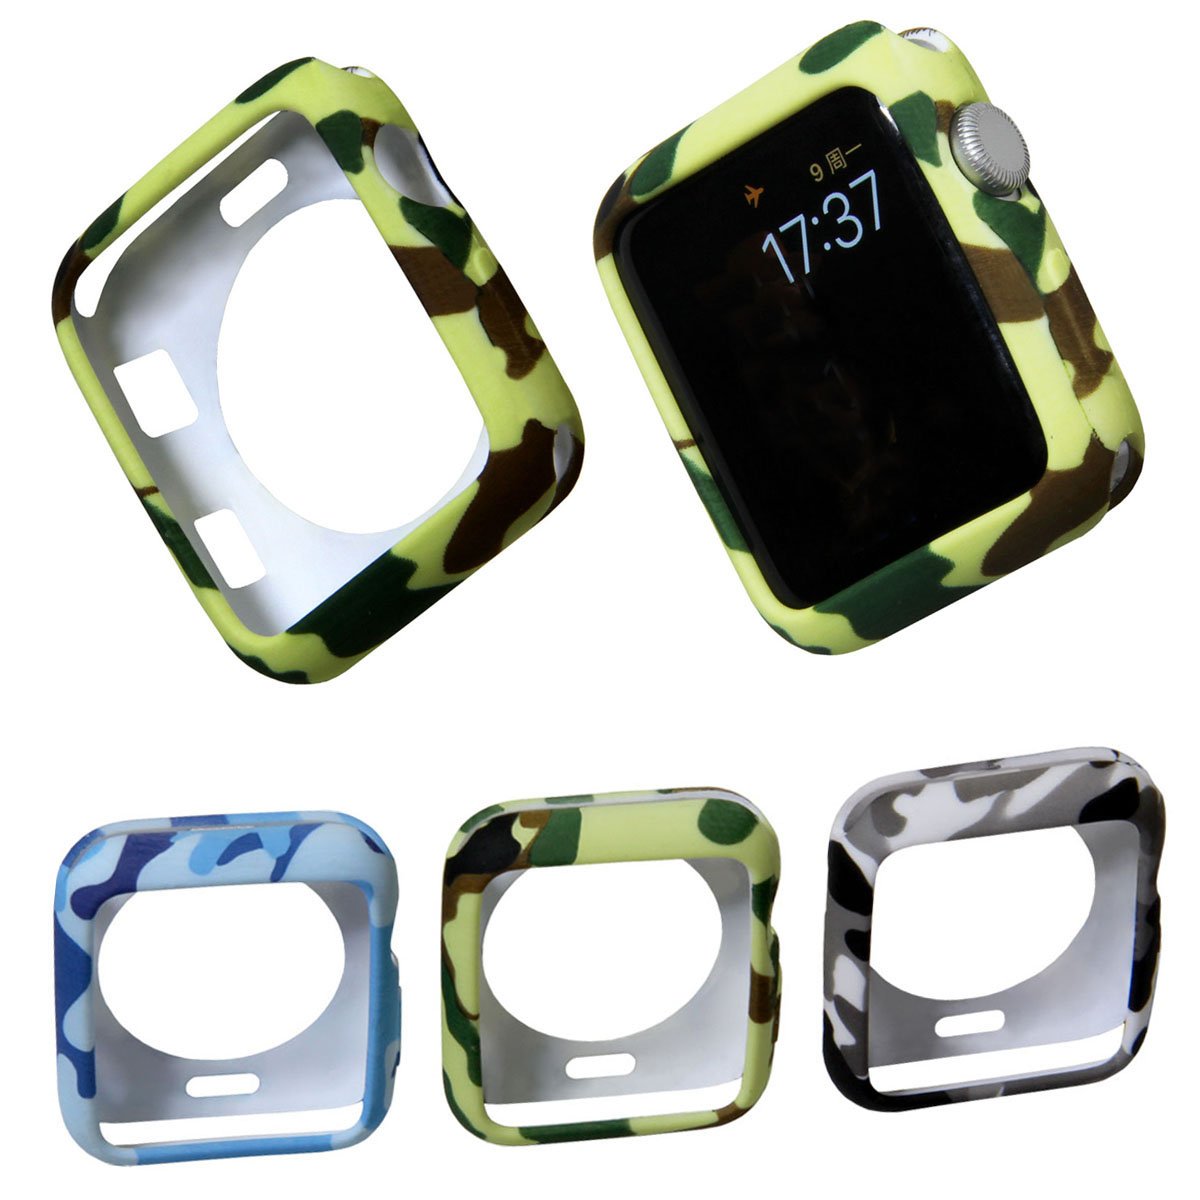 Cover for <font><b>Apple</b></font> <font><b>Watch</b></font> Series <font><b>3</b></font> 2 1 38mm <font><b>42mm</b></font> Case Protector Camouflage Soft Silicone Full Case for iWatch Accessories image